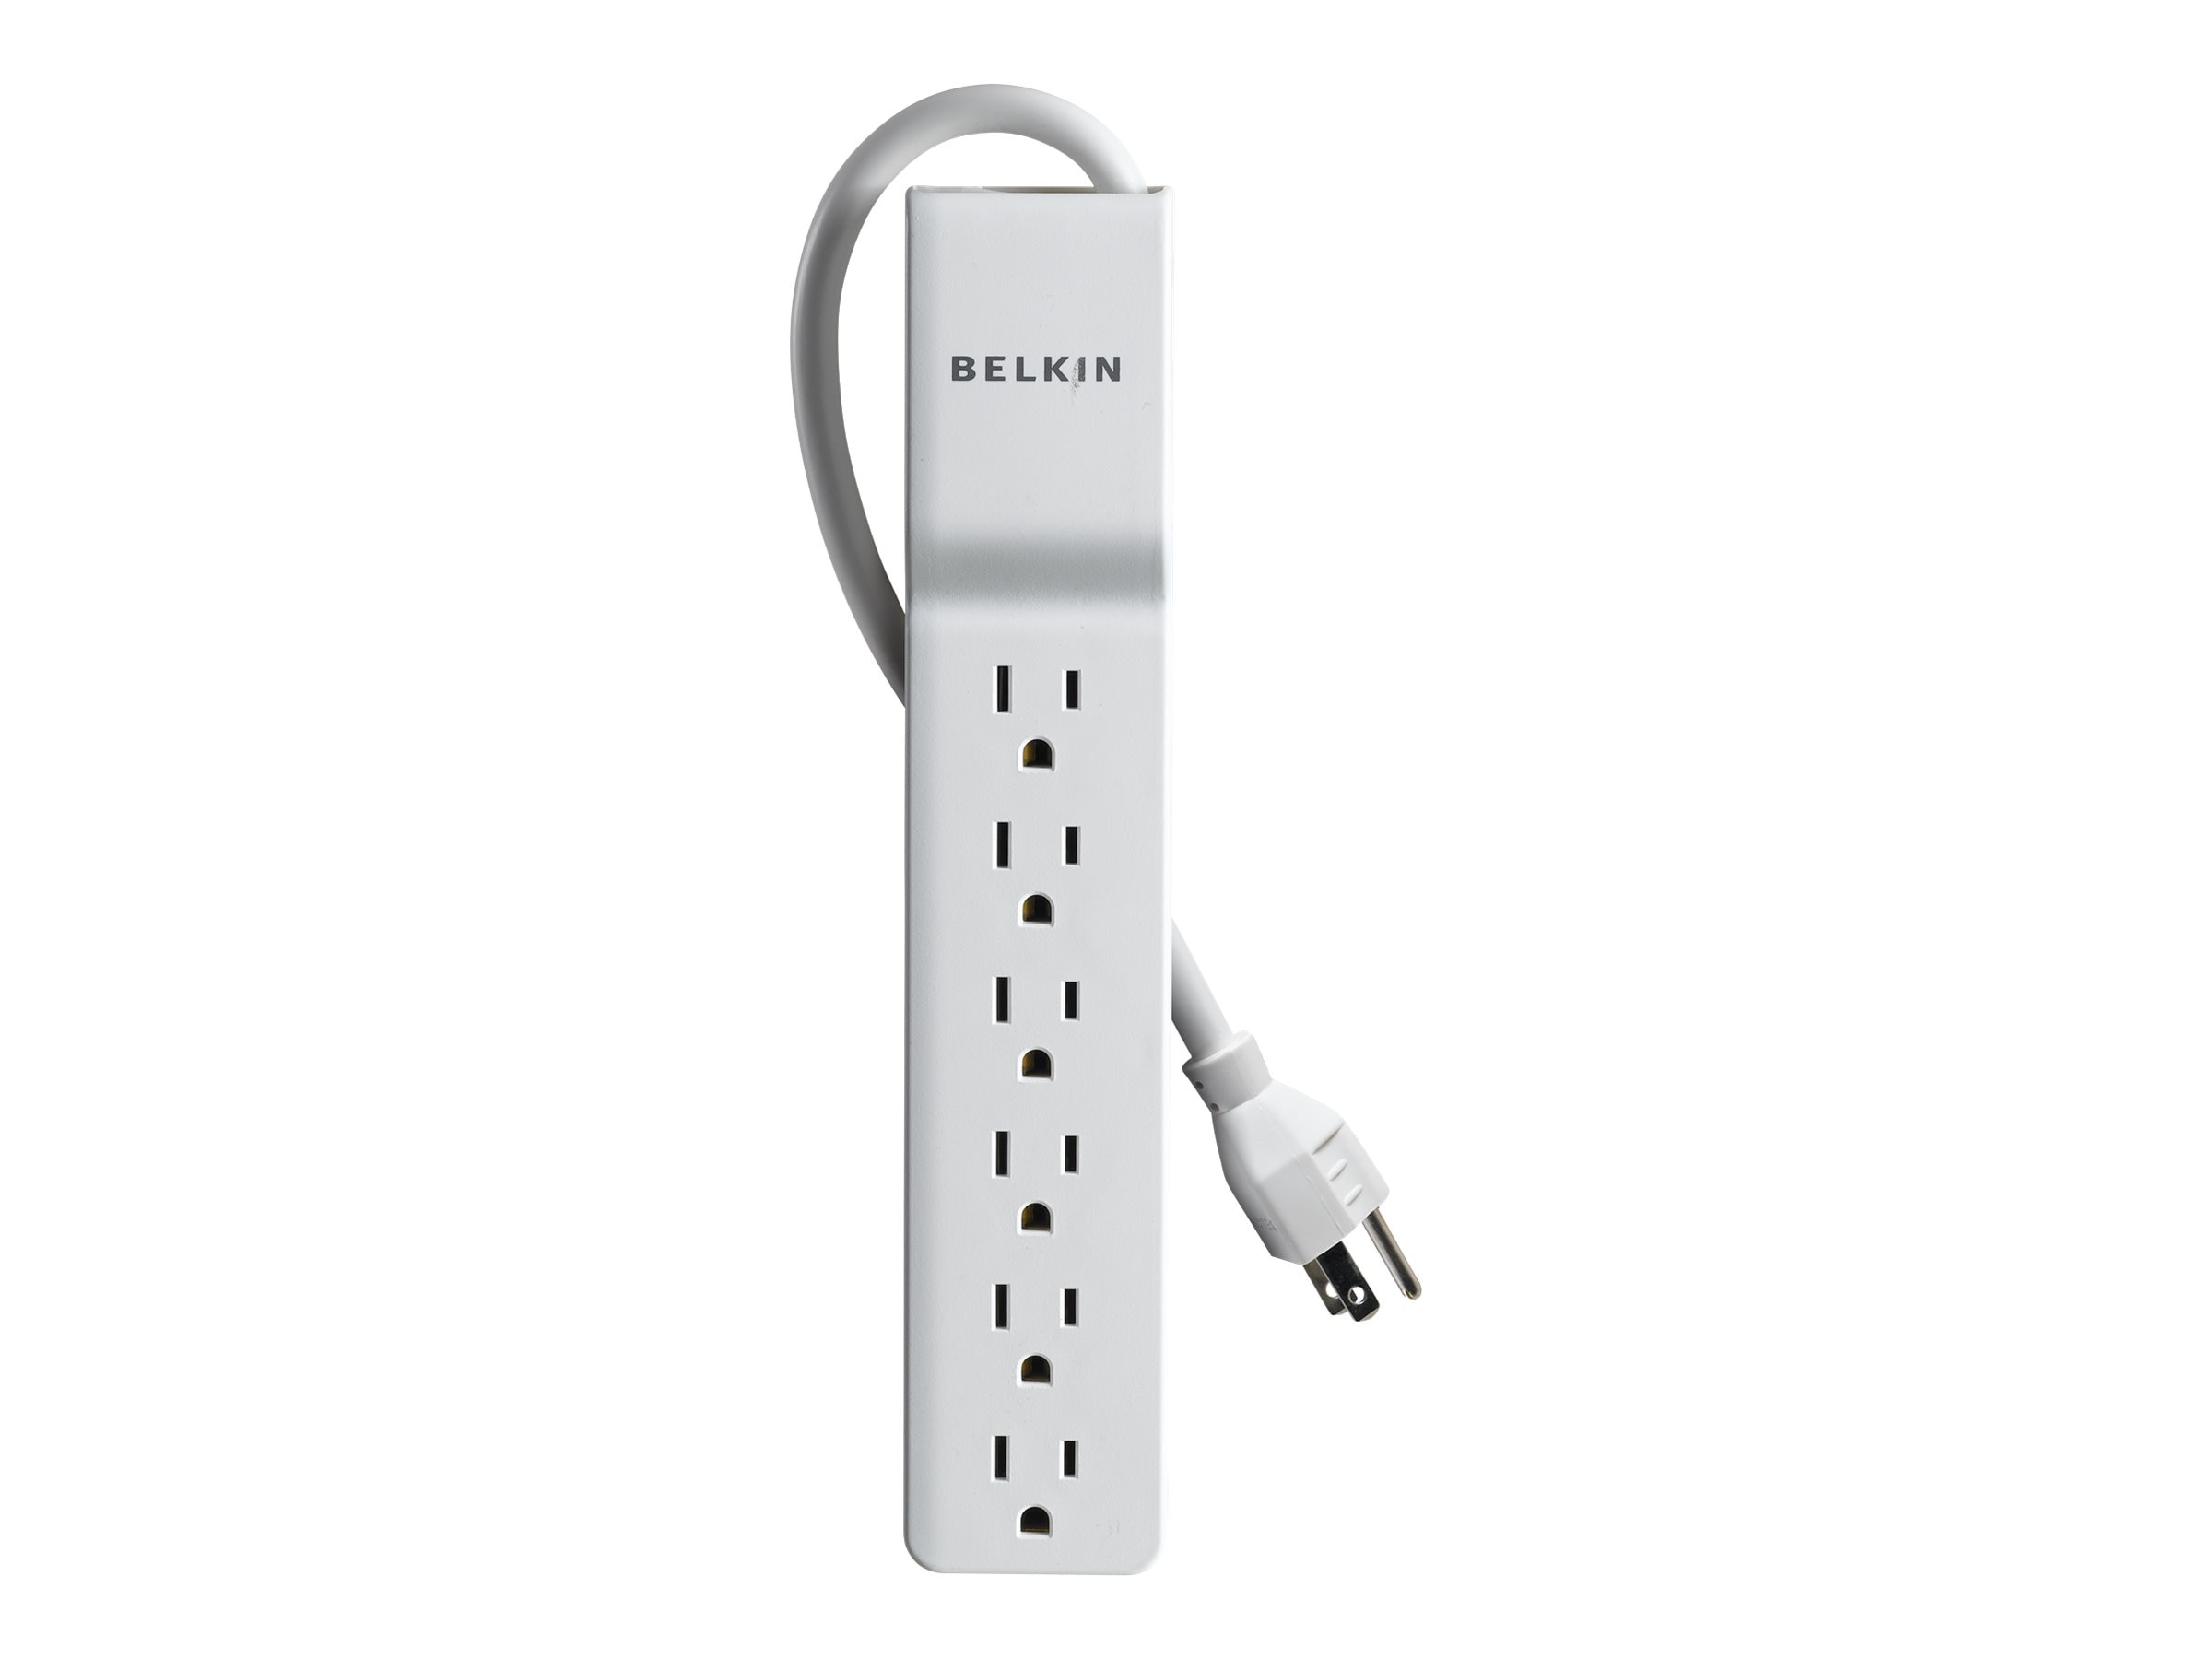 Belkin Home Office Series Surge Protector, 720 Joules, 6-Outlets, 4ft Cord, BE106000-04, 7080251, Surge Suppressors